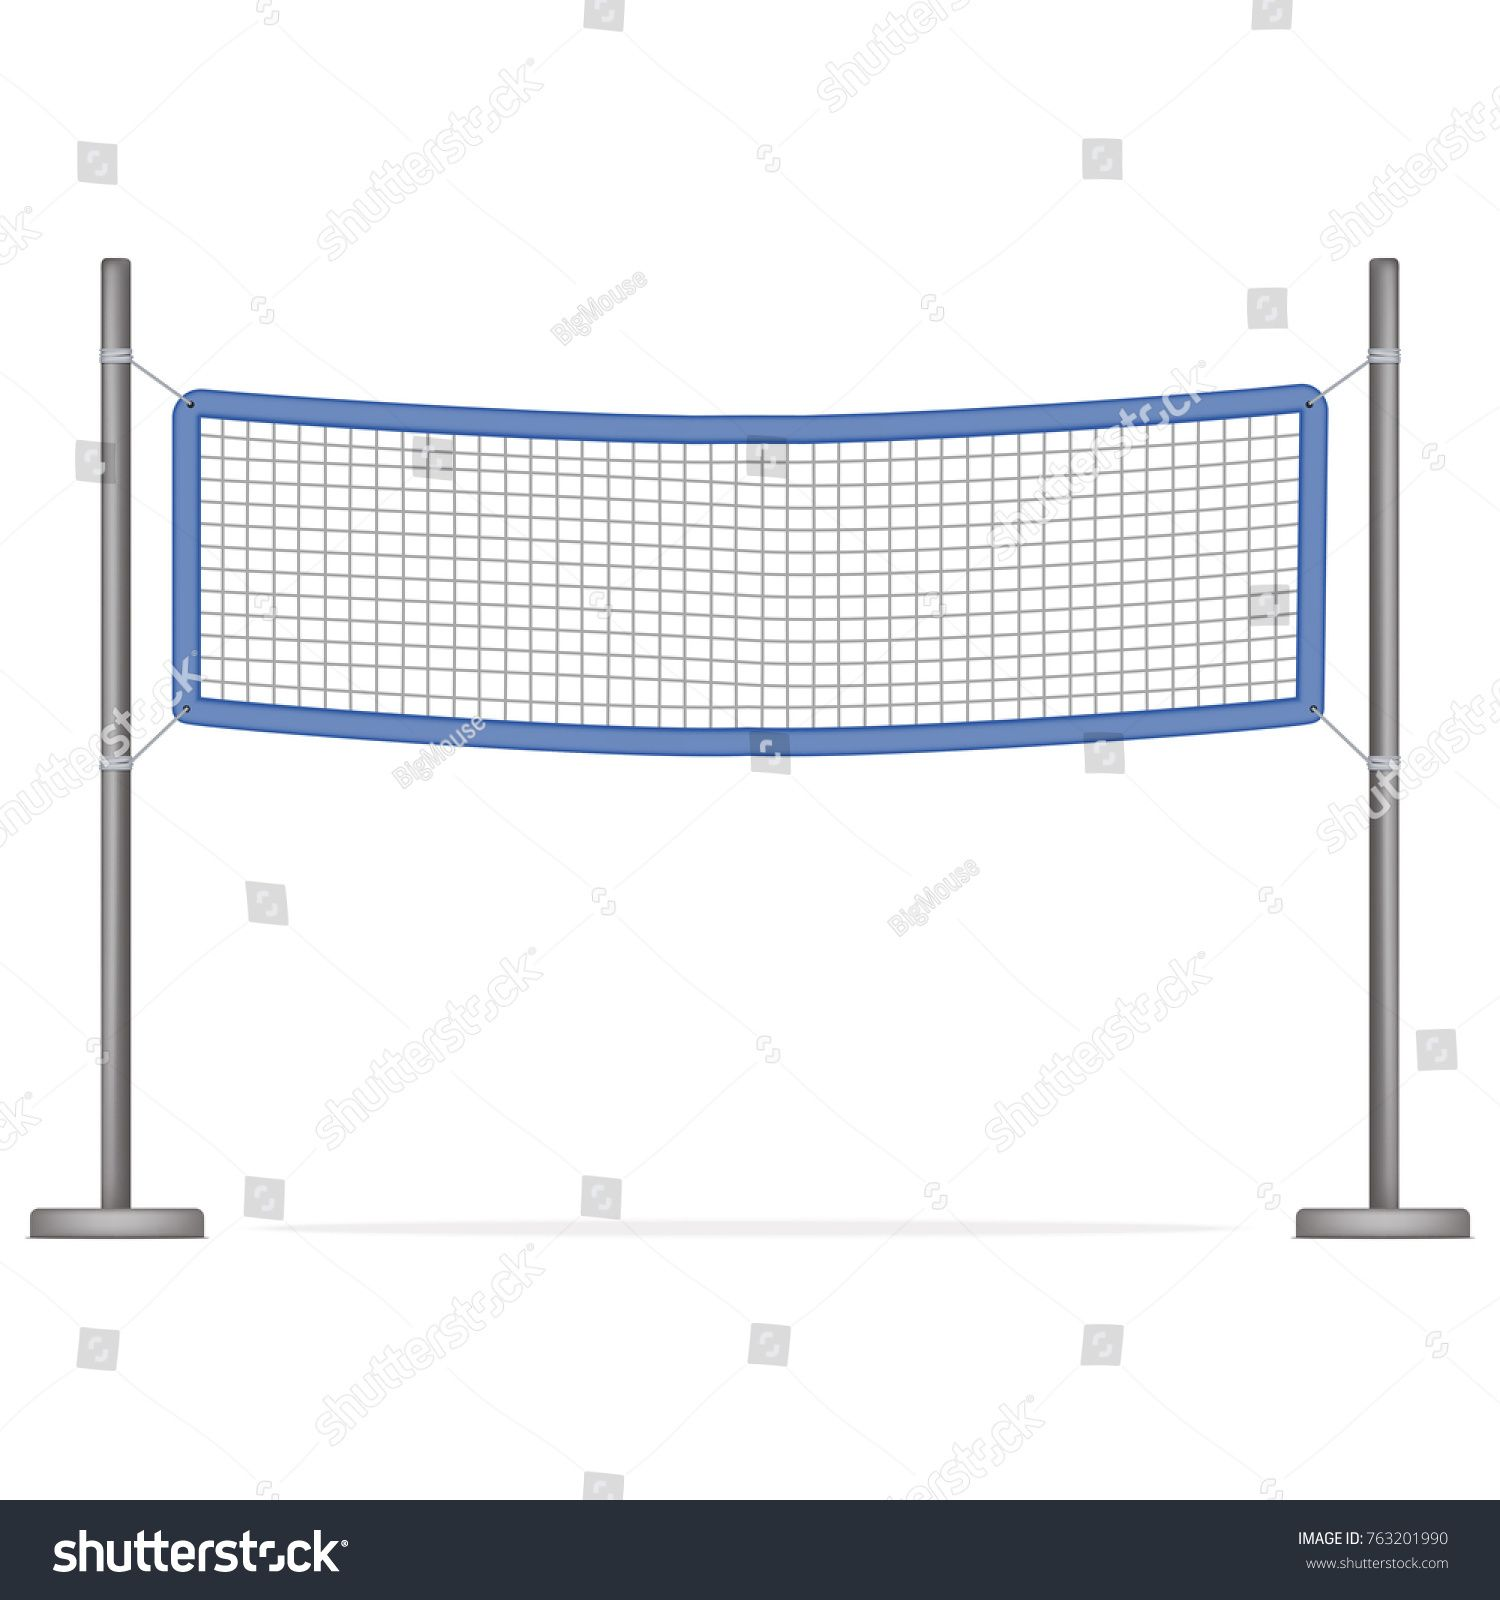 Realistic Detailed 3d Volleyball Net For Sport Game Activity Leisure Isolated On White Background Vector Illustration Volleyball Net Sports Games Volleyball